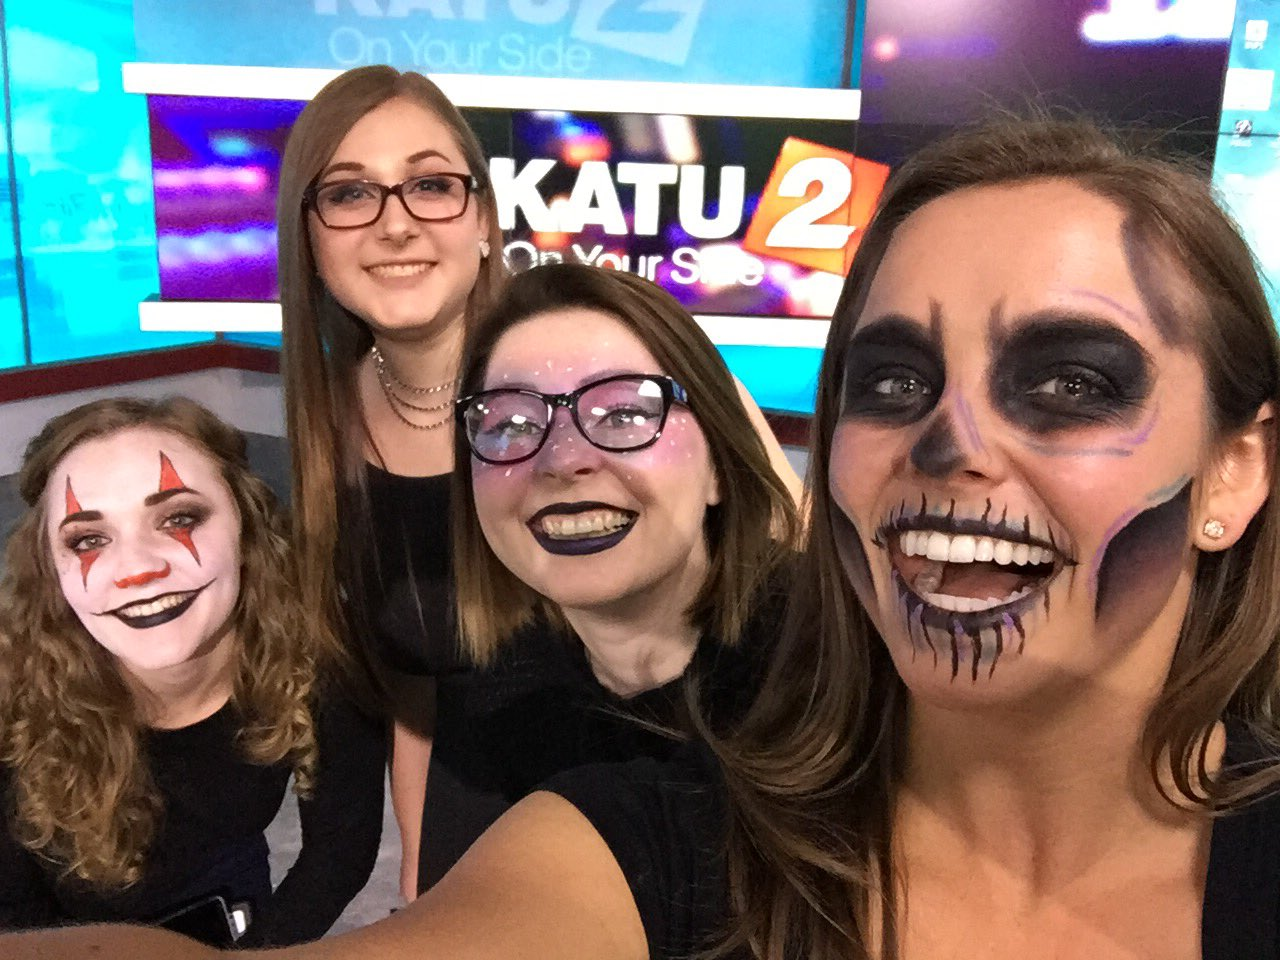 Halloween face paint doesn't need to be complicated. Sometimes you can use the makeup you already have at home! (SBG photo)